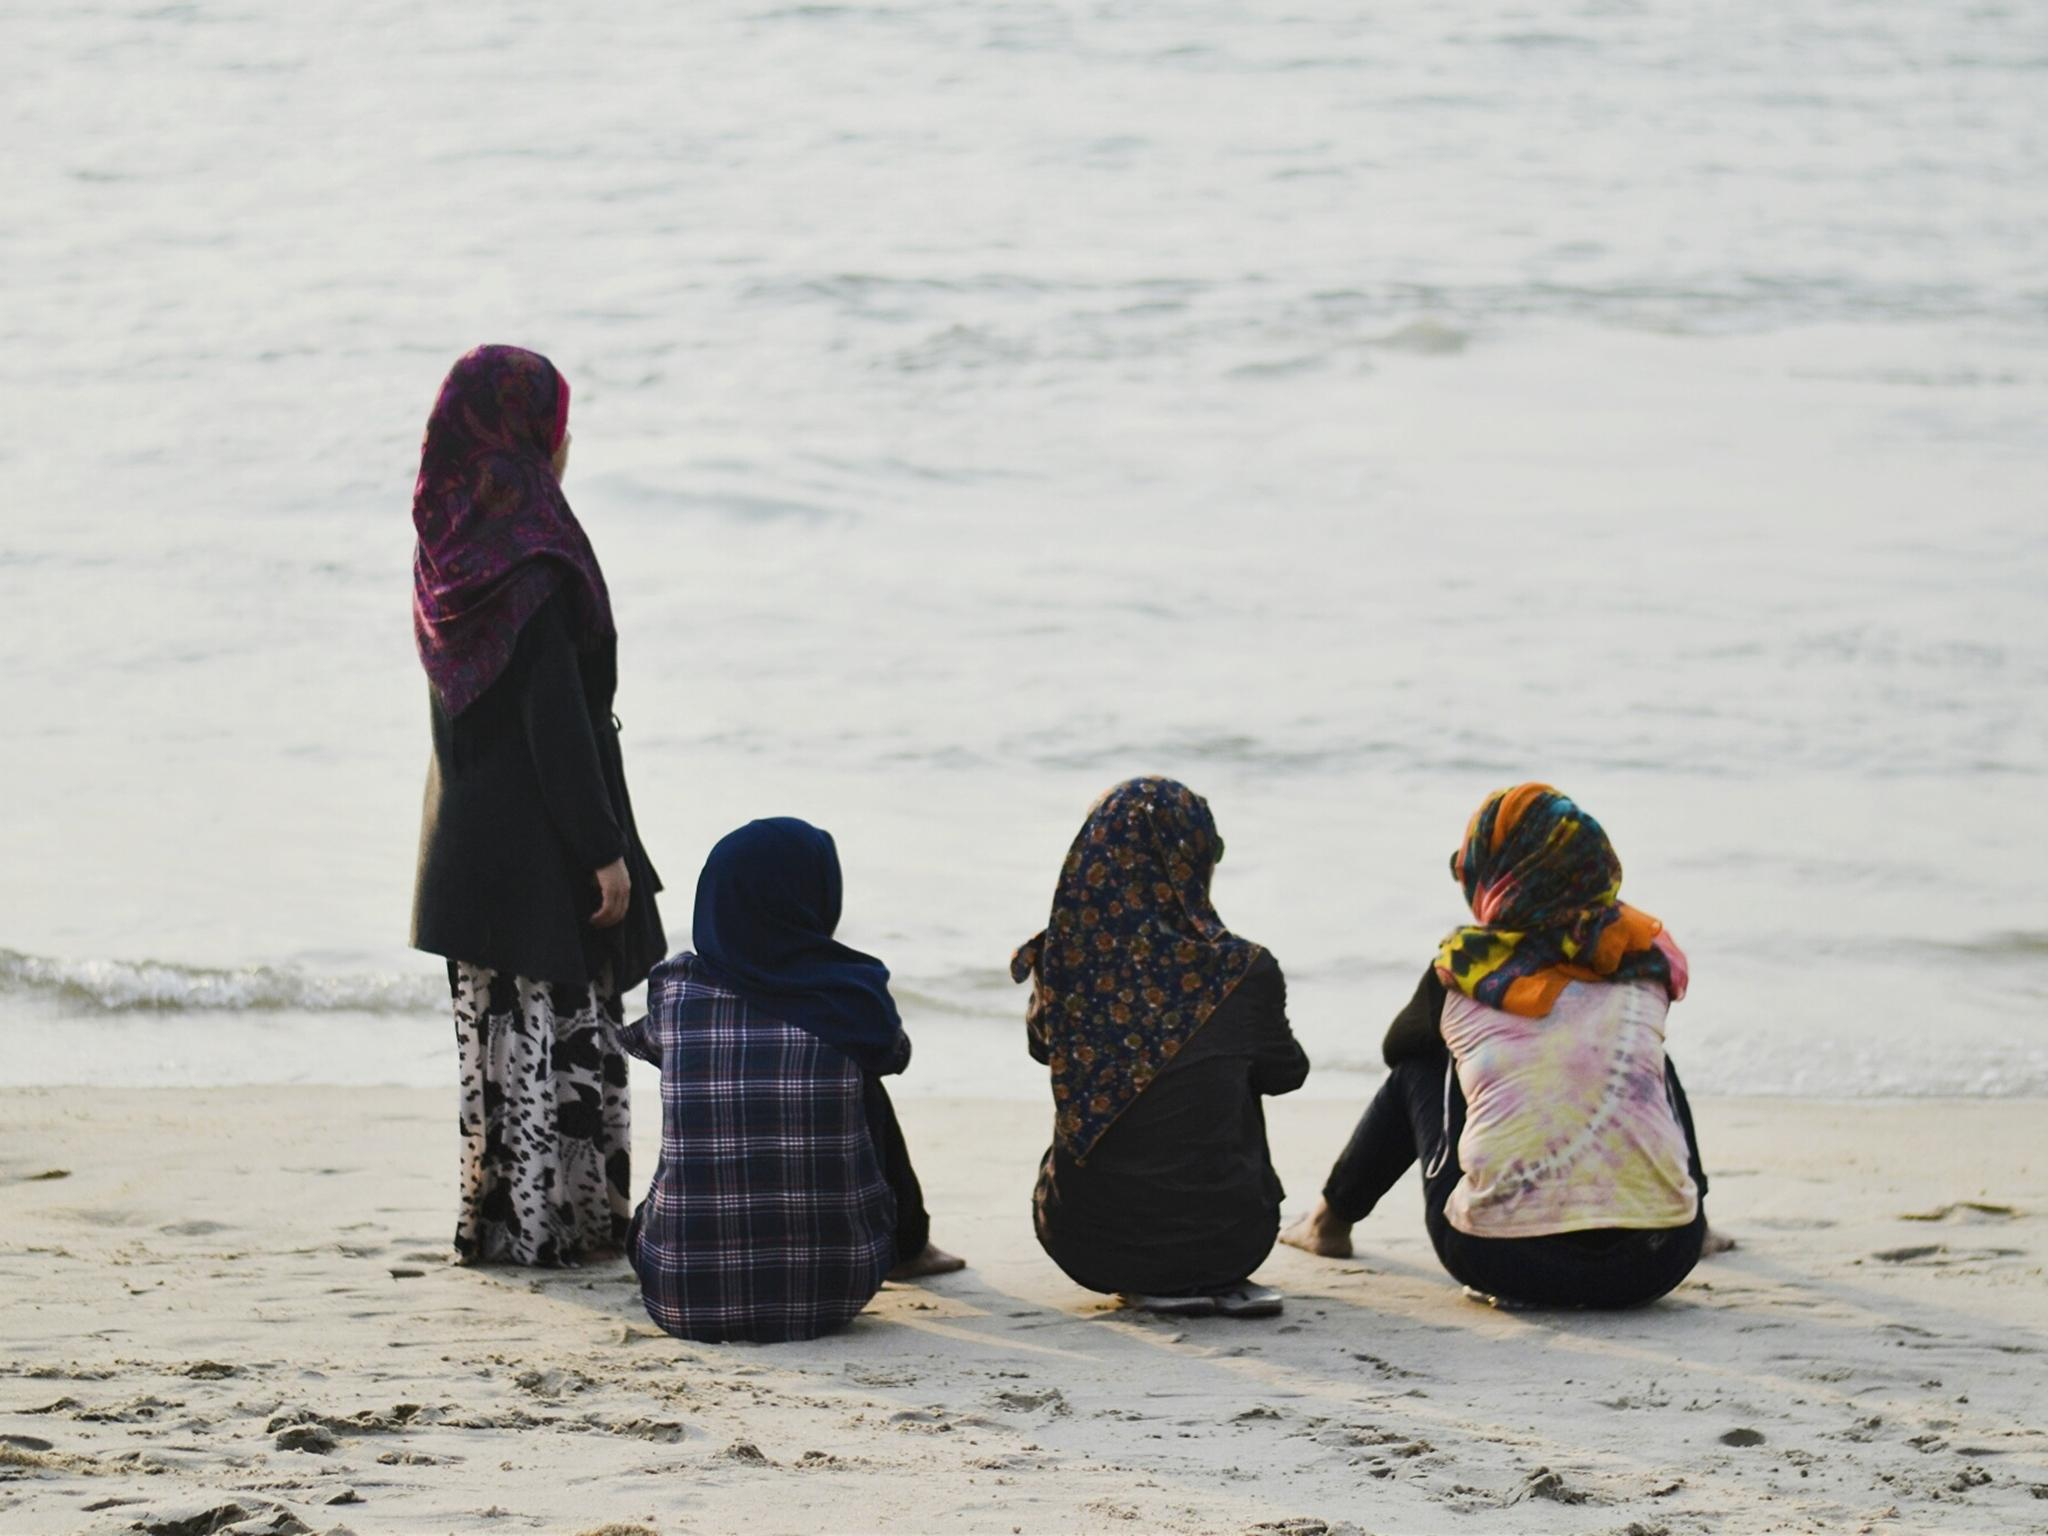 york beach muslim personals Access new york, new york personal ads with personal messages, pictures, and voice recordings from singles that are anxious to meet someone just like you free chat rooms , and dating tips  create your own free member profile today with photos, audio, or video today.